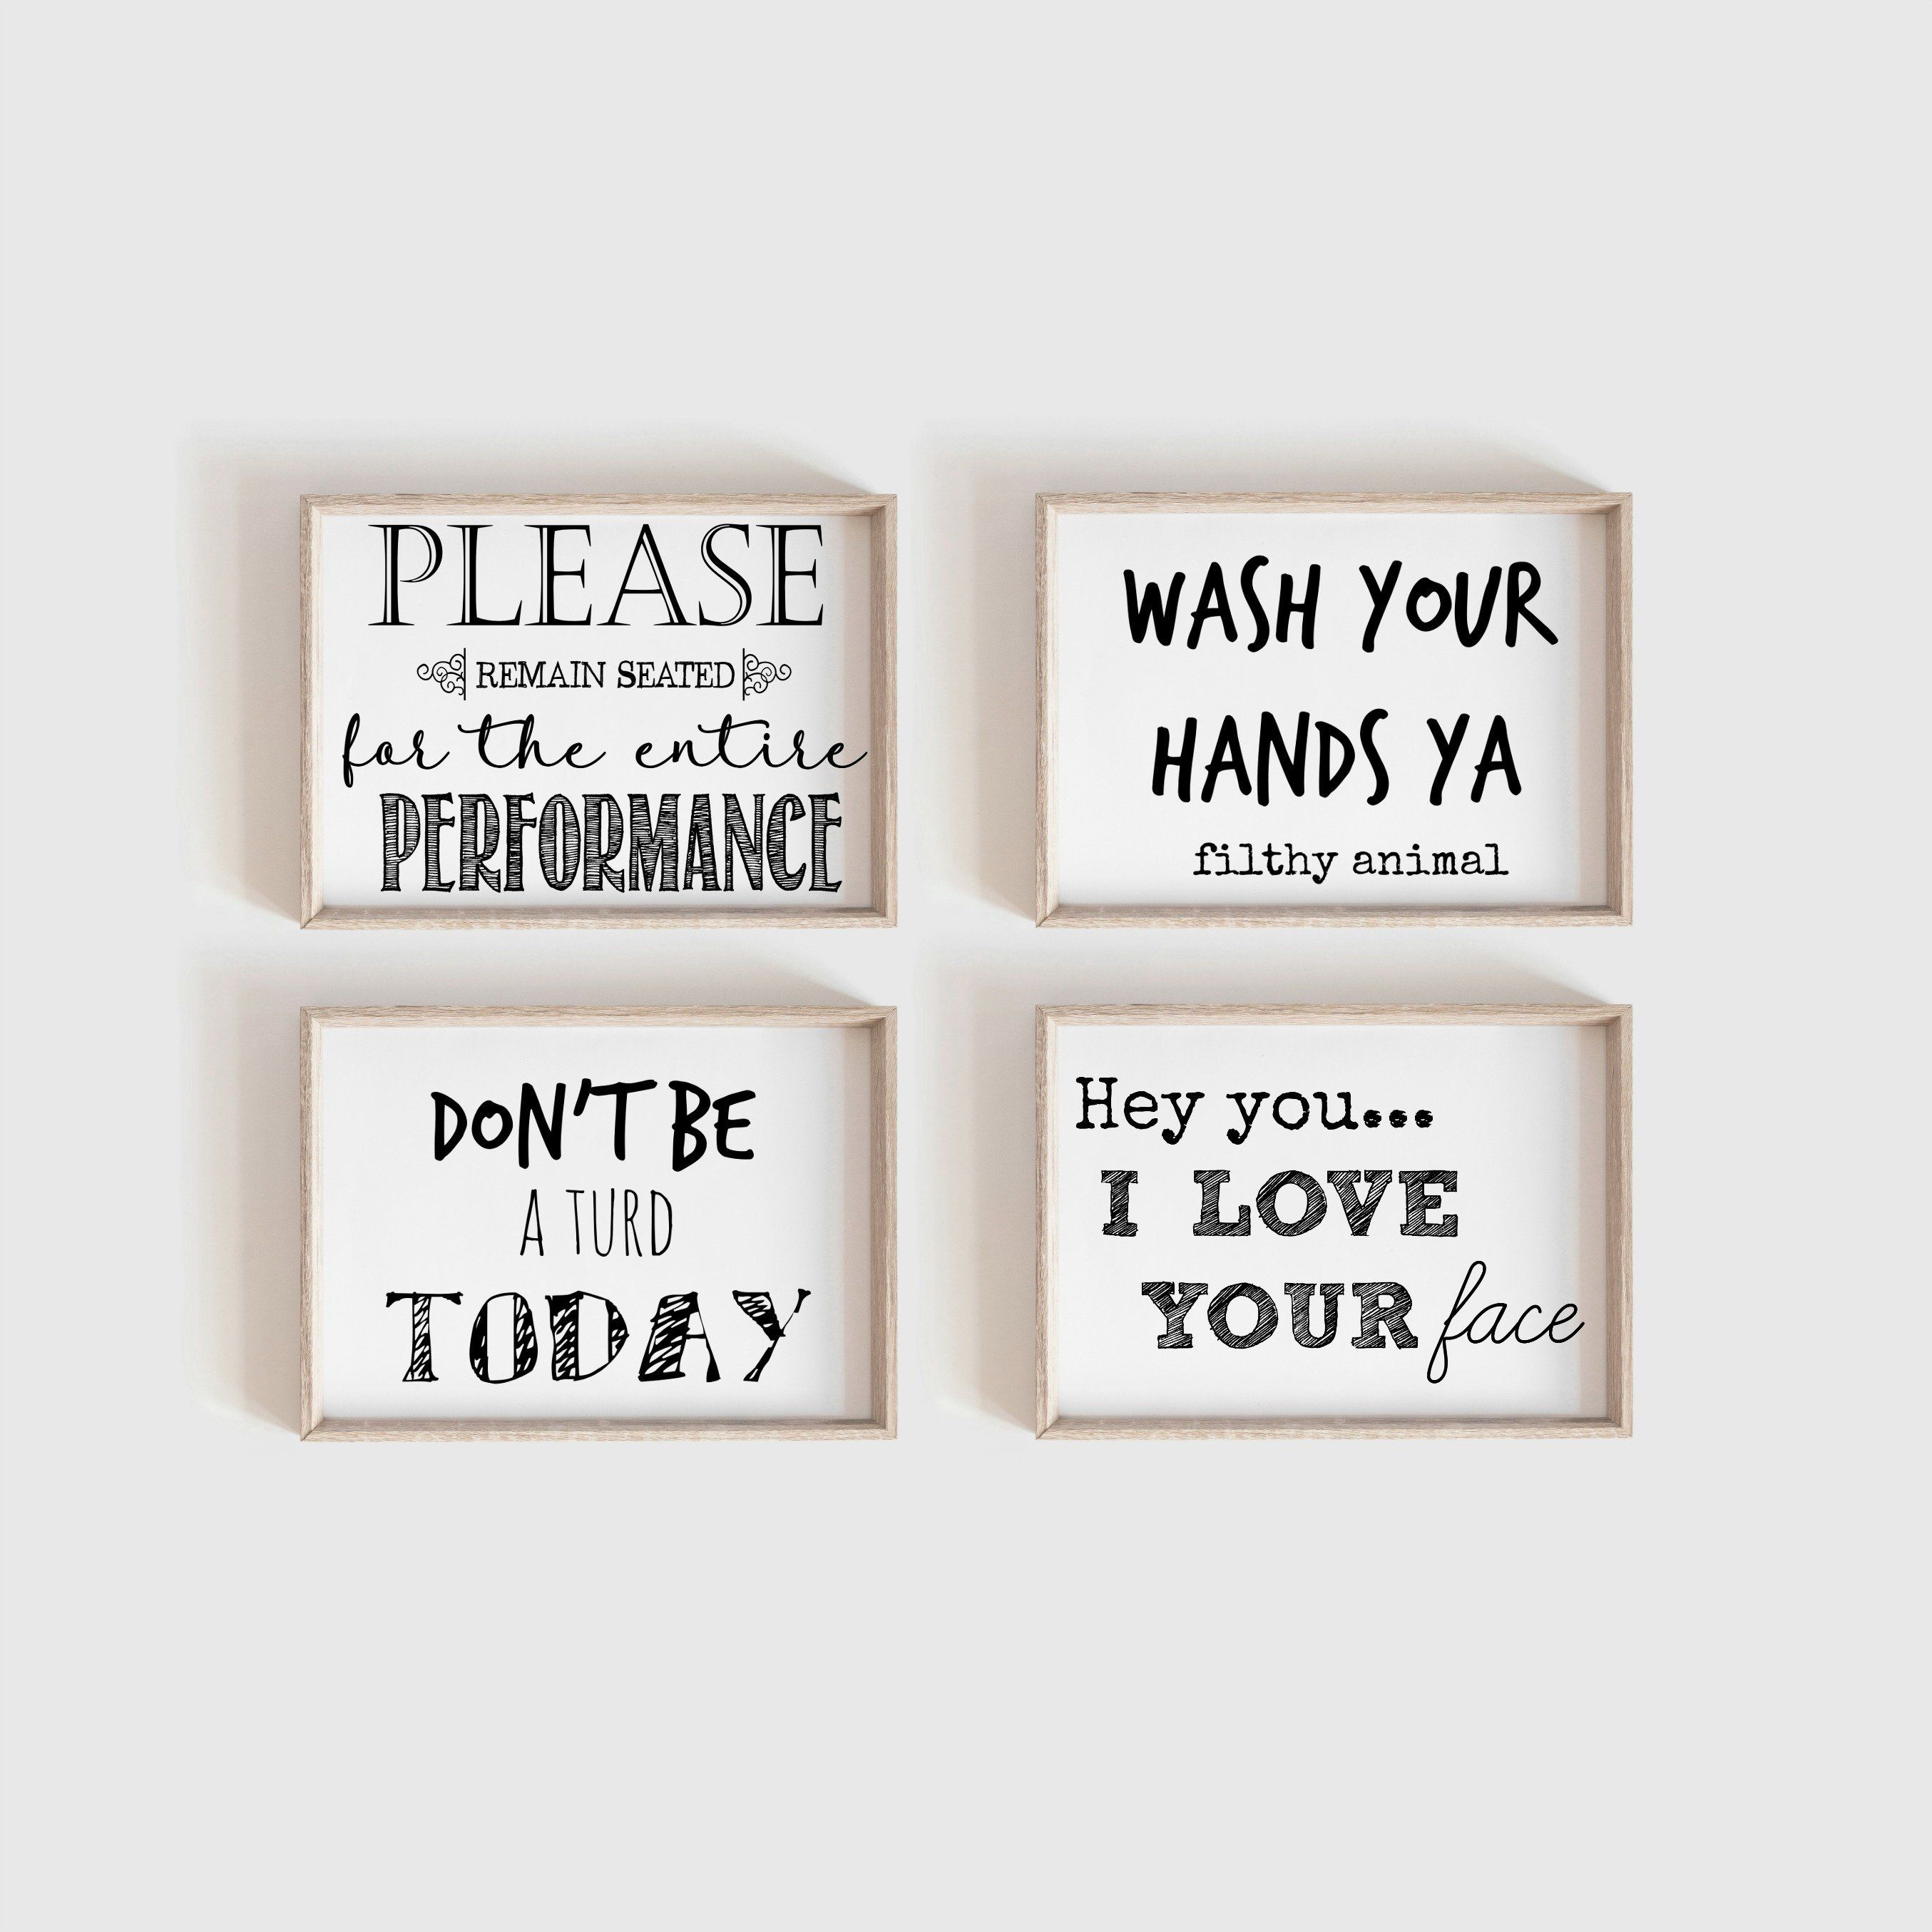 Funny Bathroom Art Bathroom Prints Printable Art Kids Bathroom Set Of 4 Bathroom Wall Decor Bathroom Printables Funny Wall Art Bathroomdecor Bathroom Humor Funny Bathroom Art Bathroom Art